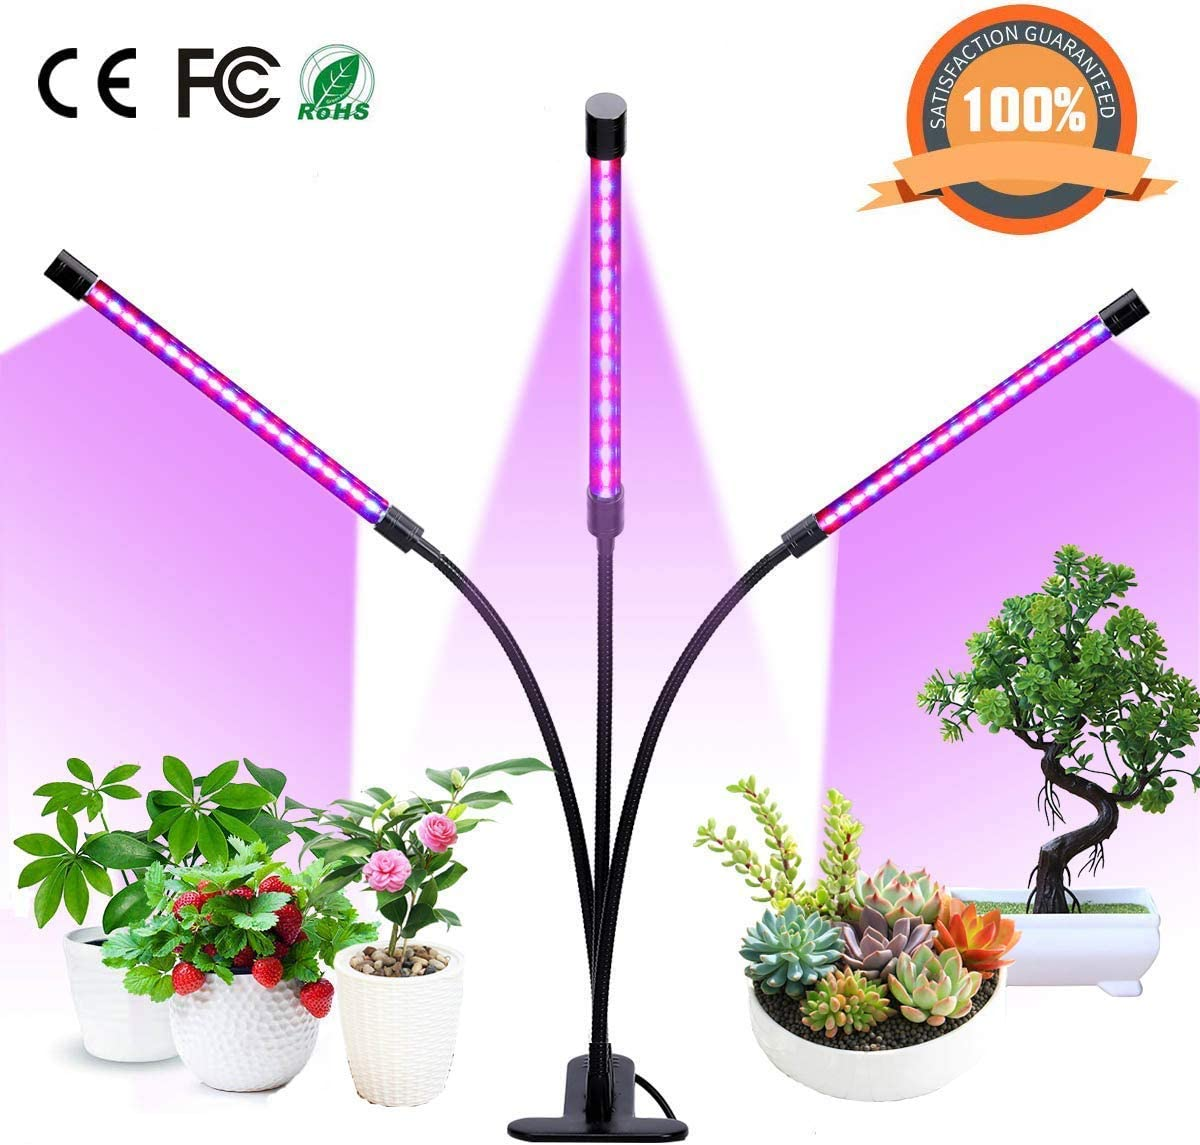 DCLYSI Grow lights,27W LED Plant Grow Lamp Bulbs, Auto ON Off with 3 6 12H Timer 5 Dimmable Levels Clip-On Desk Plant Grow Lights for Indoor Plants,Succulents,Hydroponics,Greenhouse,Garden